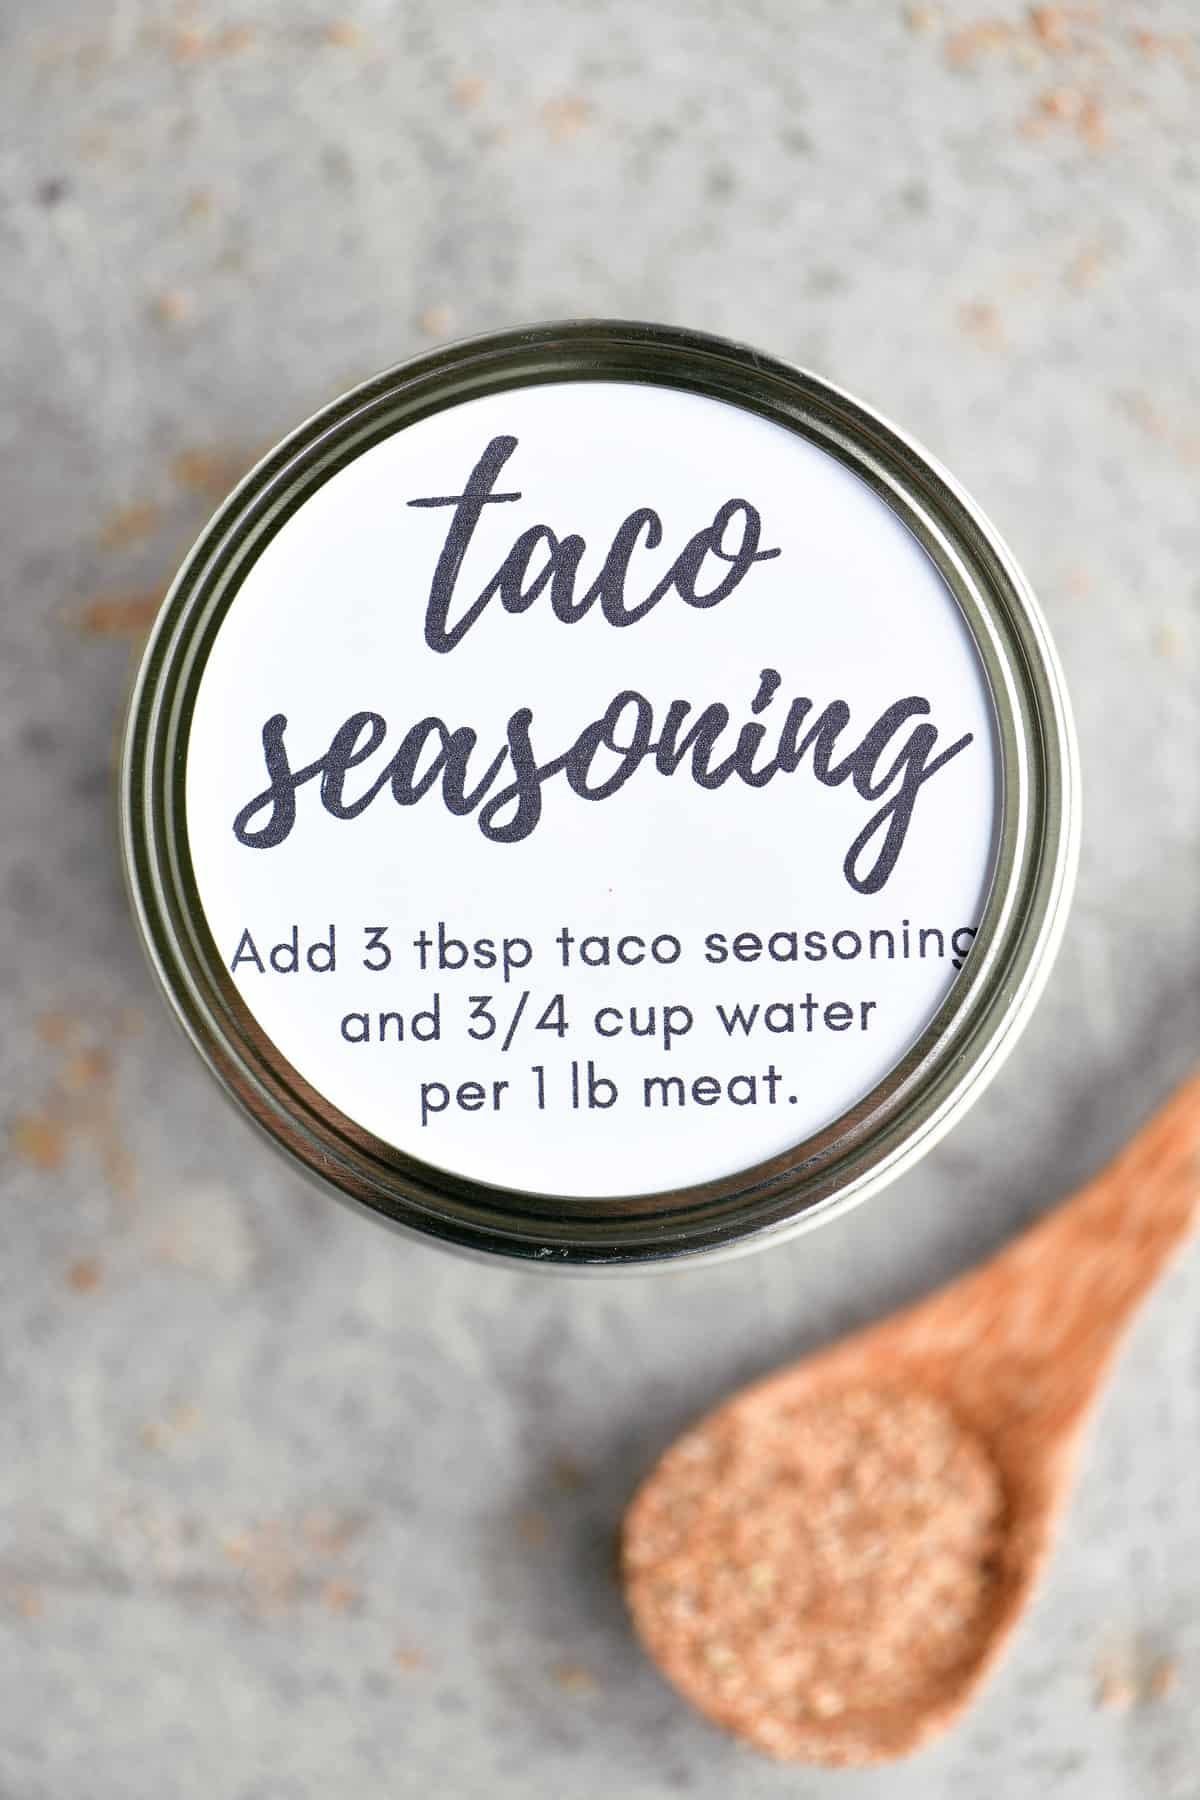 taco seasoning in a jar with label